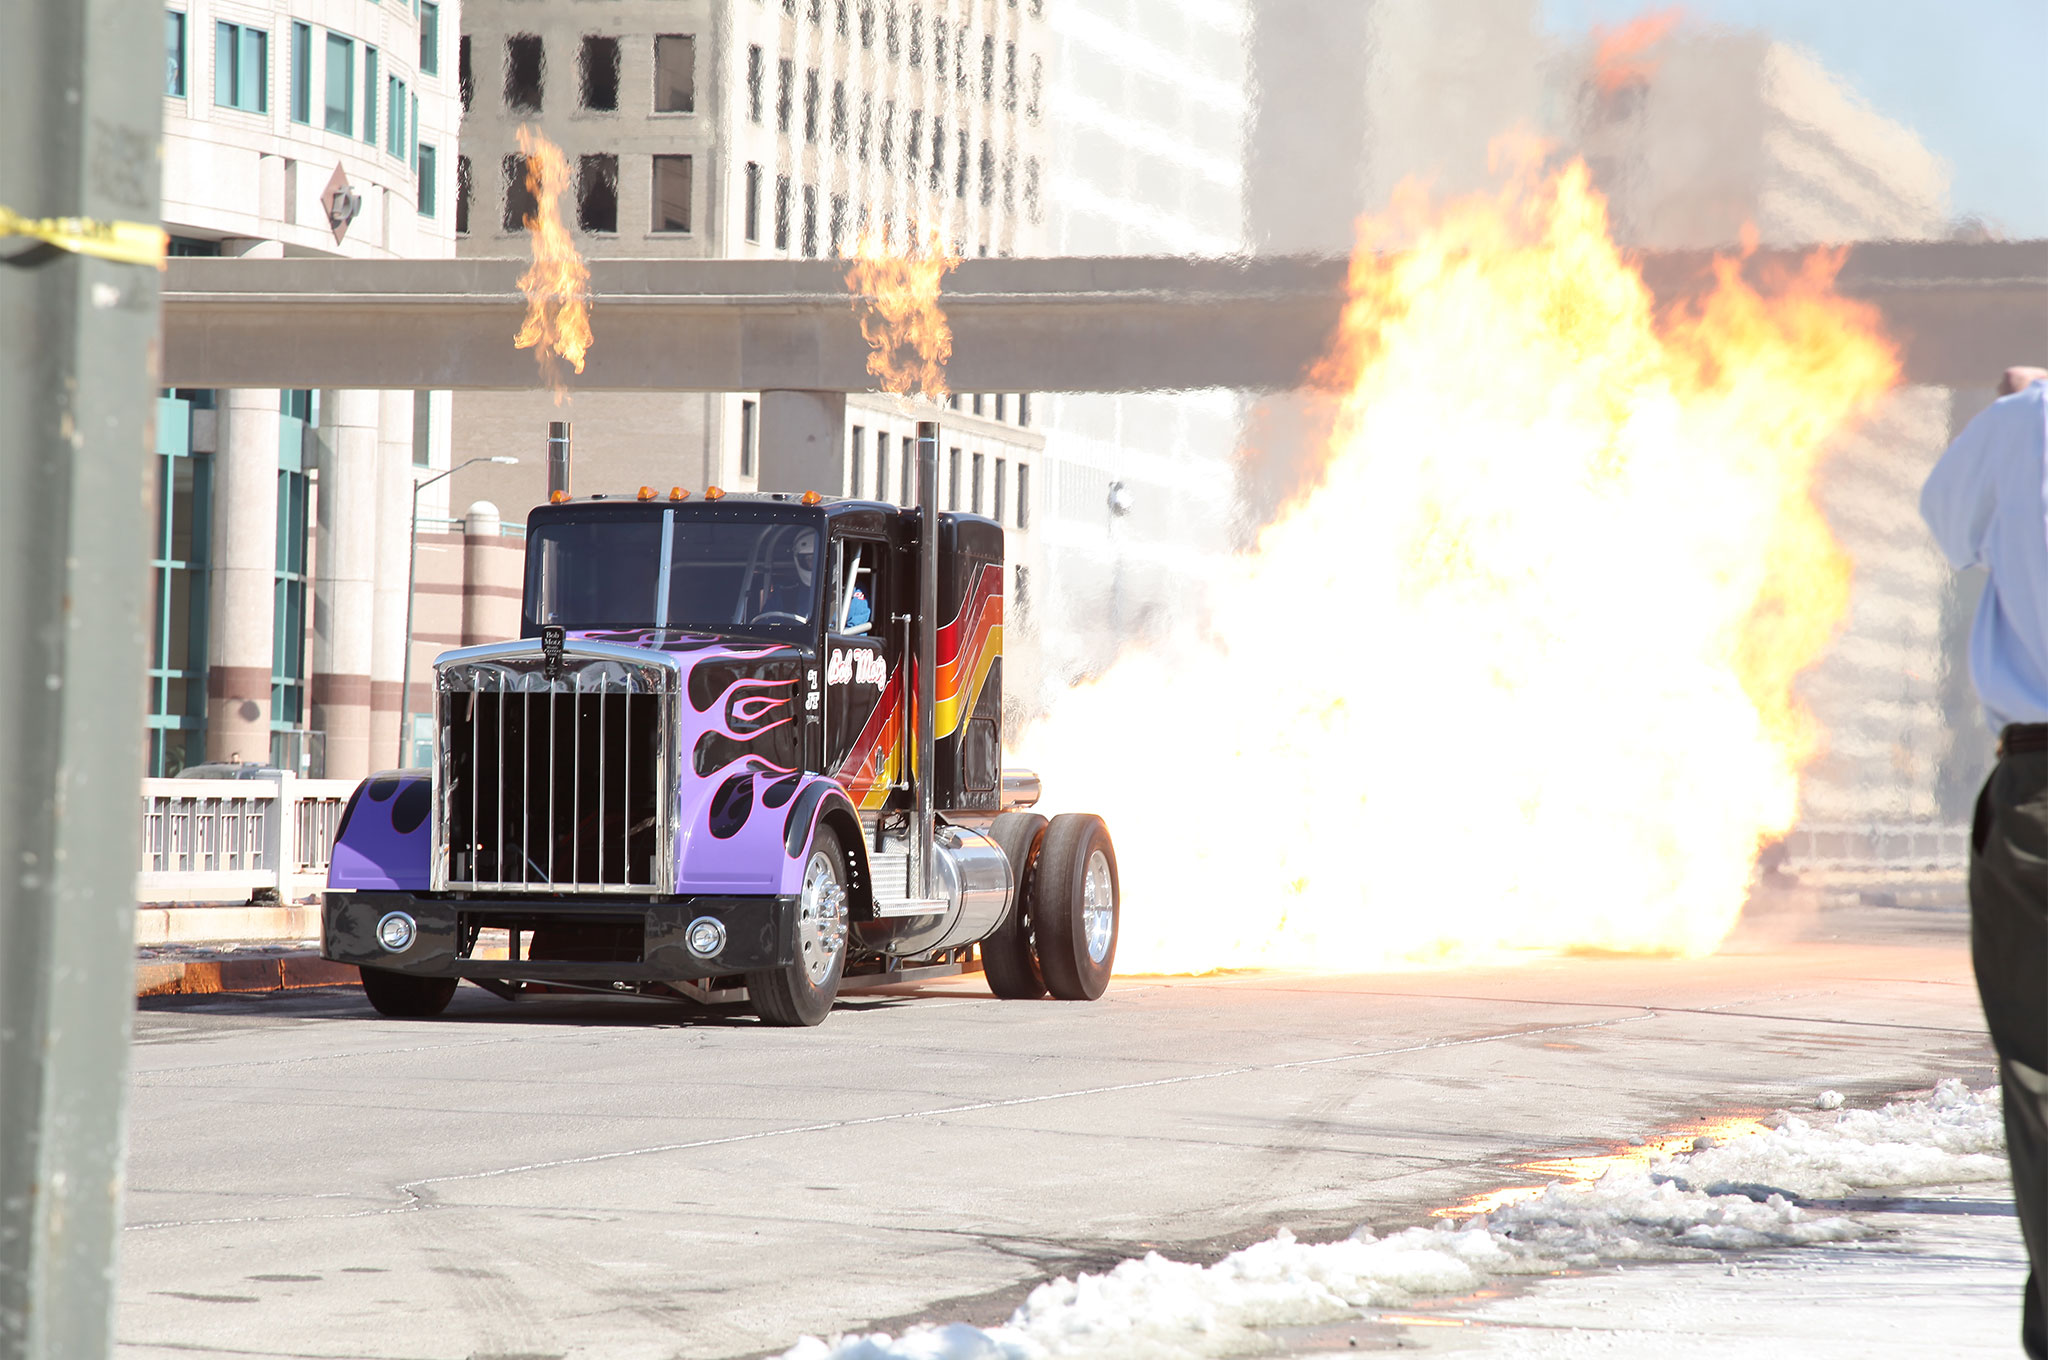 The event started with a bang when Bob Motz's jet-powered semitruck performed a demonstration of its power to a group of onlookers gathered on the street in front of Cobo Hall. Besides wowing the crowd, the explosive performance alerted officials at the nearby boarder crossing into Canada, and the office of Homeland Security had to make some calls to make sure no terrorists had targeted downtown Detroit.